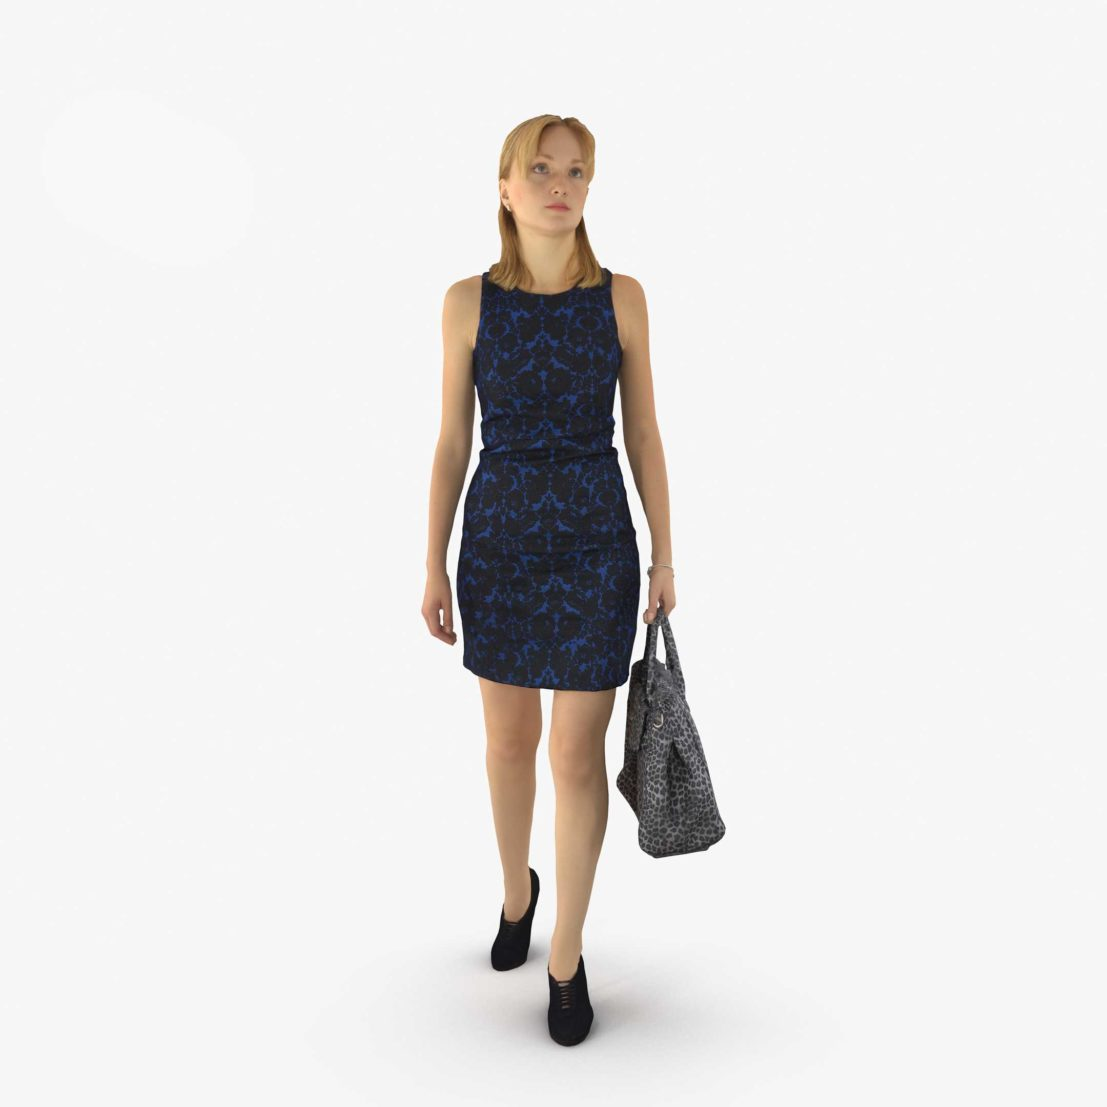 Business Woman Walking 3D Model | 3DTree Scanning Studio